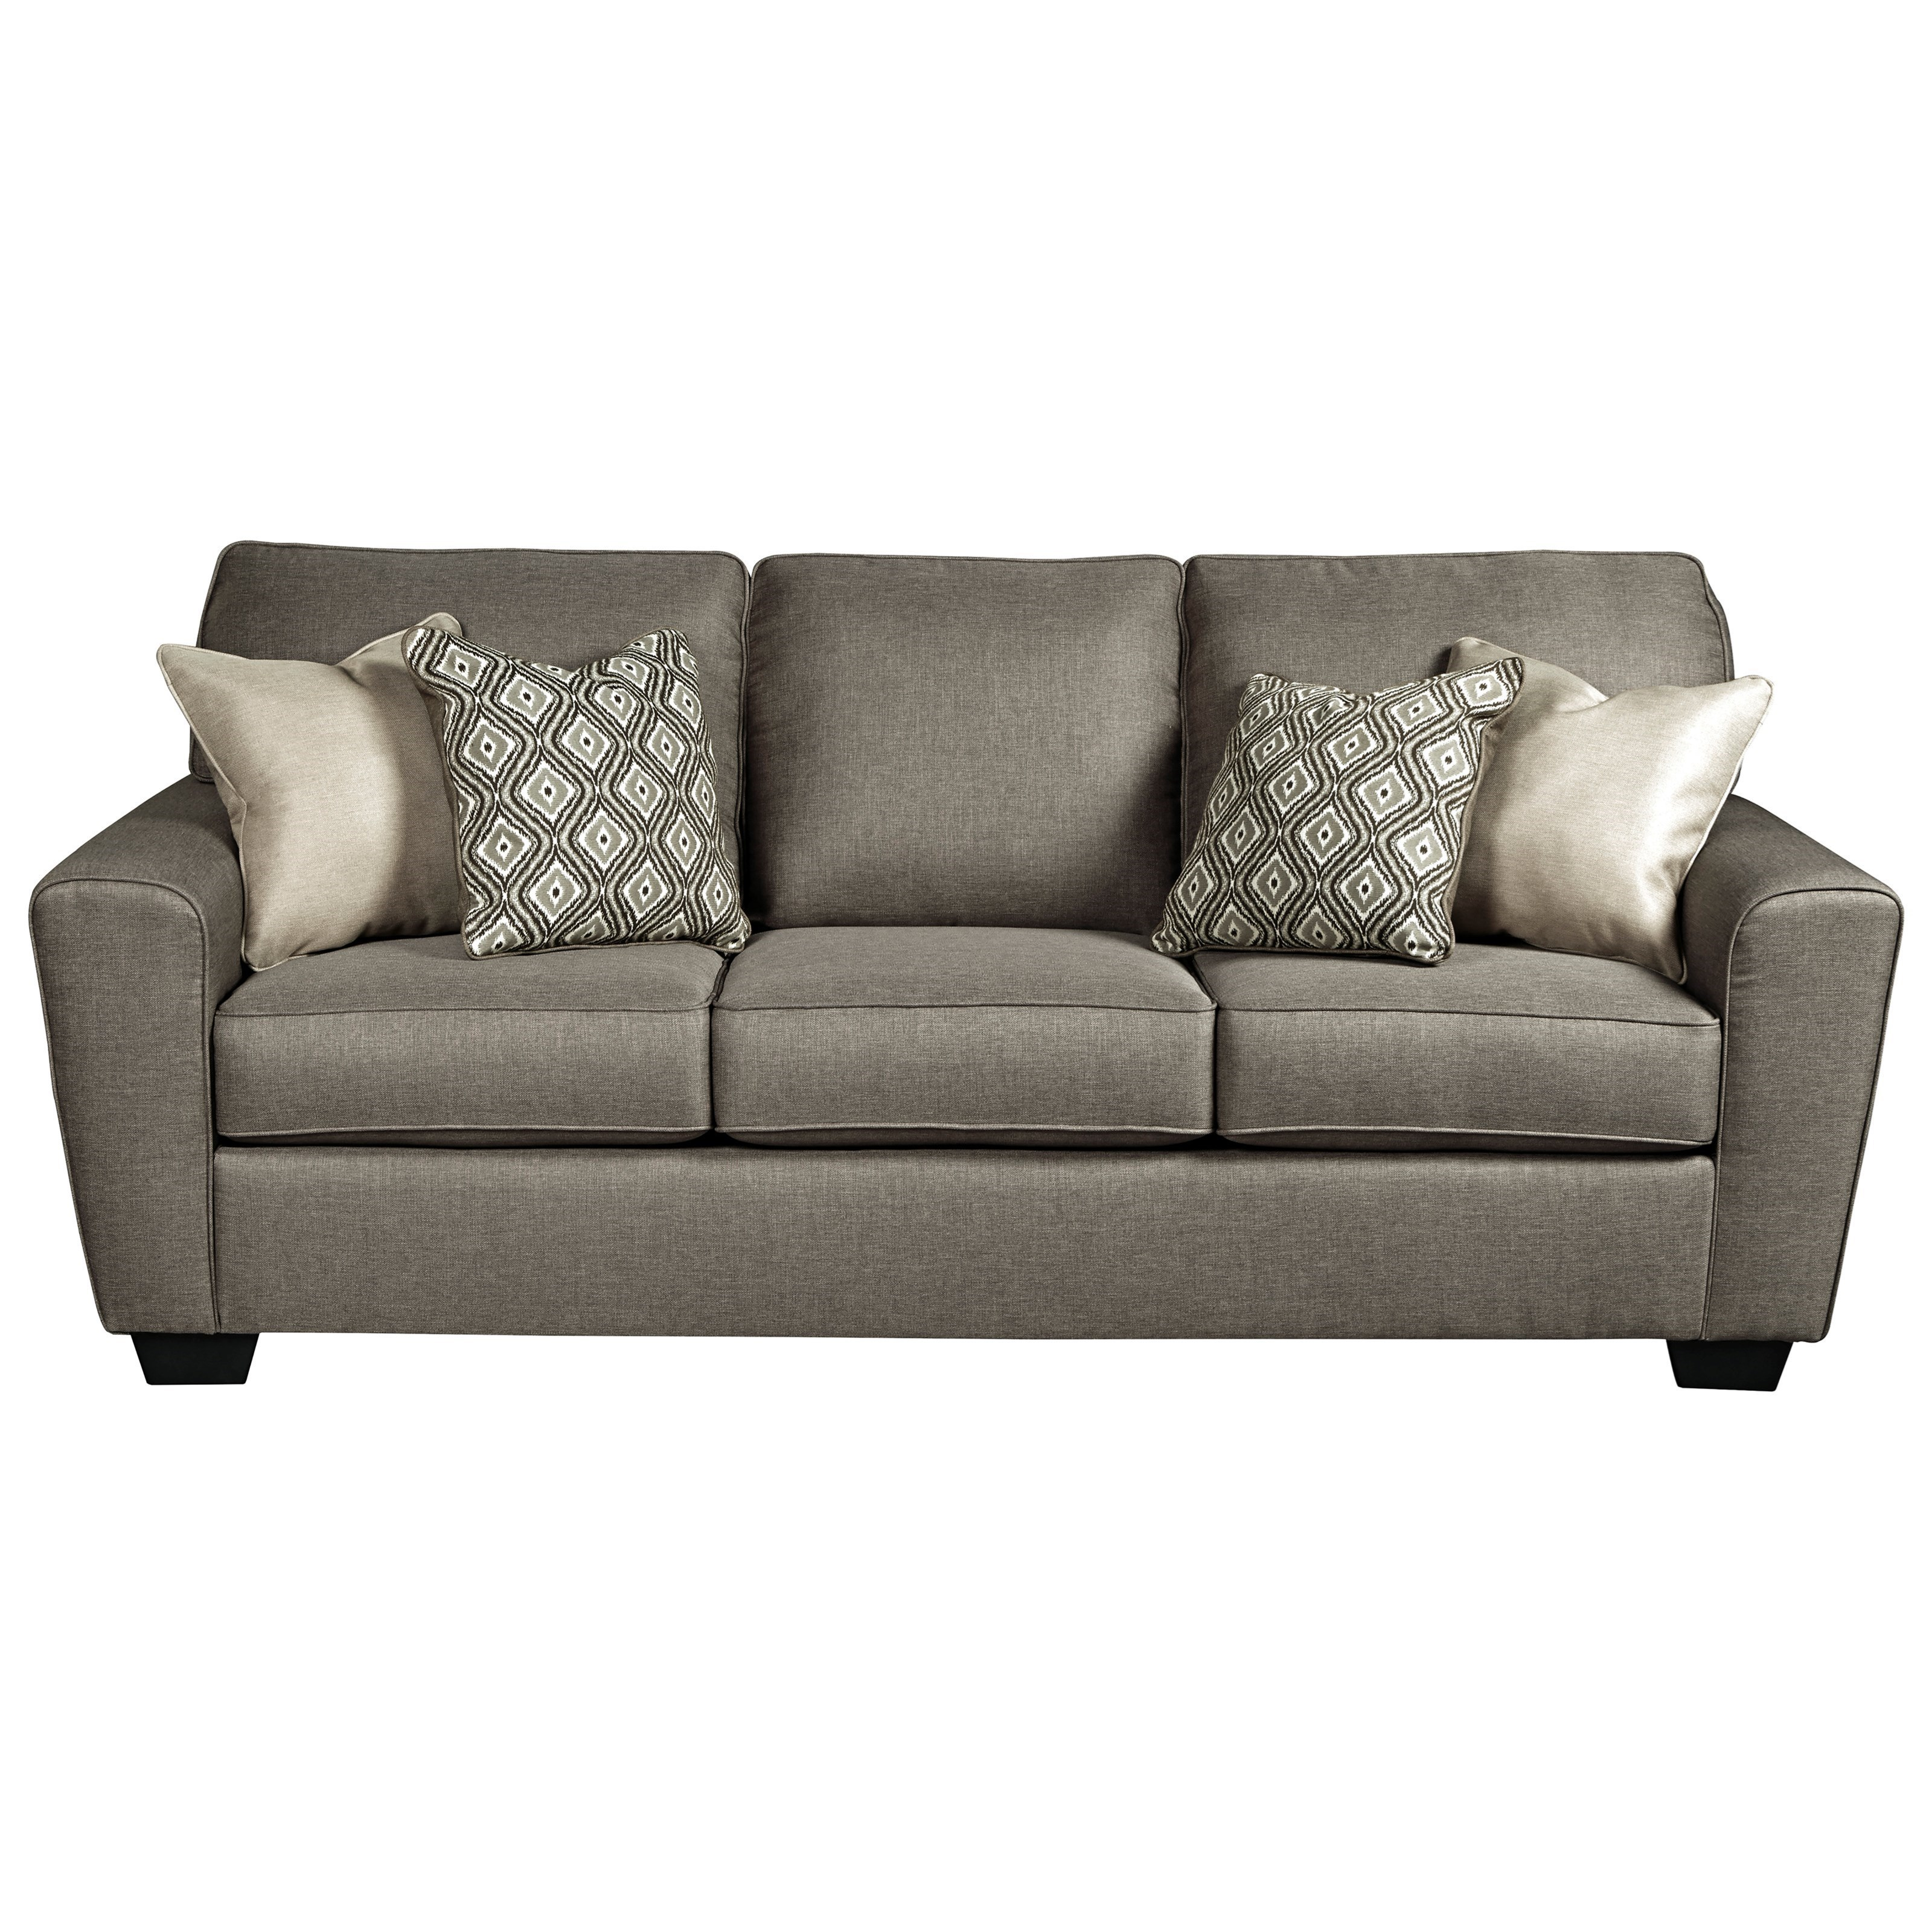 Delicieux Benchcraft Calicho Contemporary Queen Sofa Sleeper